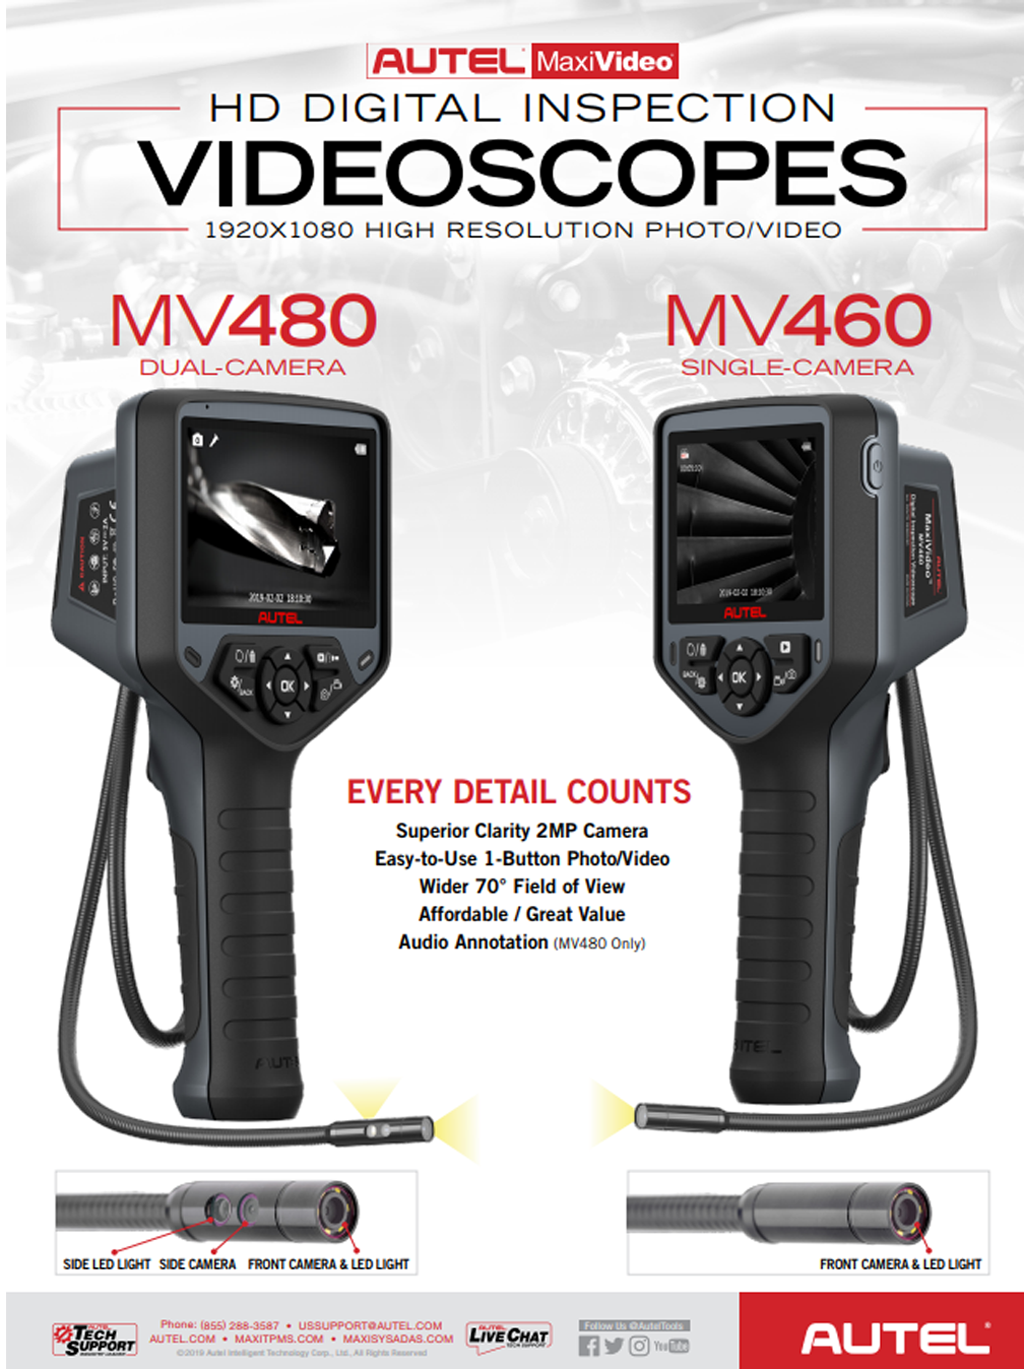 Autel MaxiVideo MV480 digital videoscope